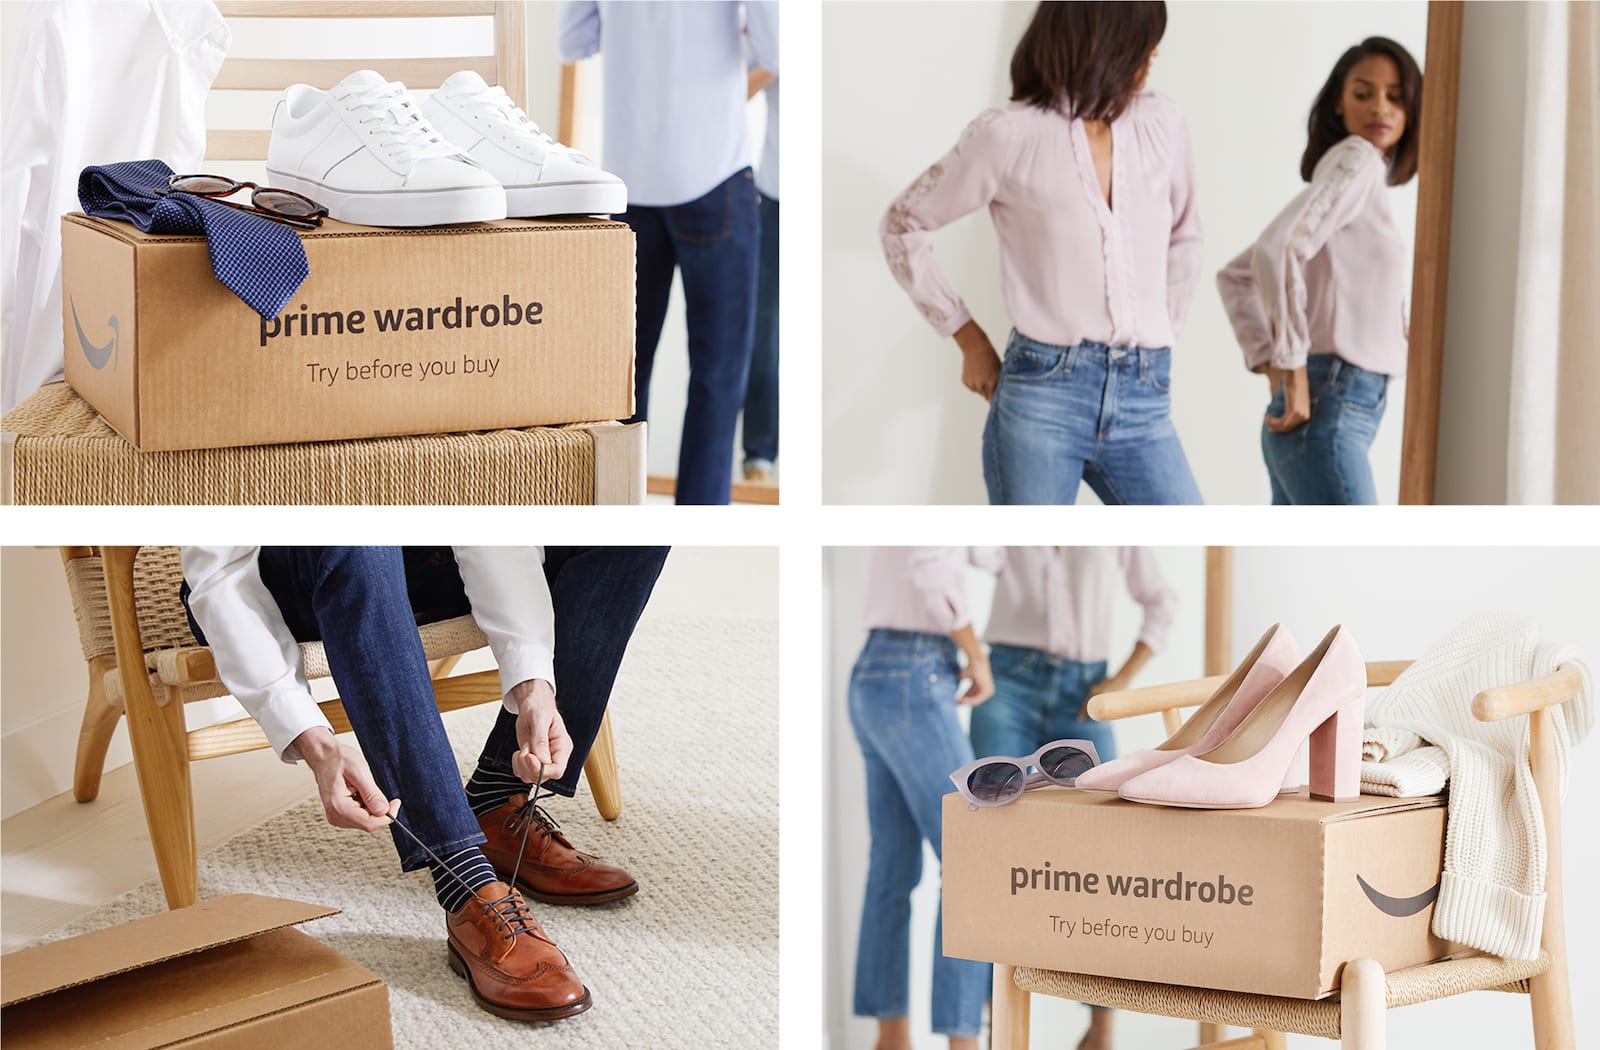 all amazon prime members can now try clothes before they buy